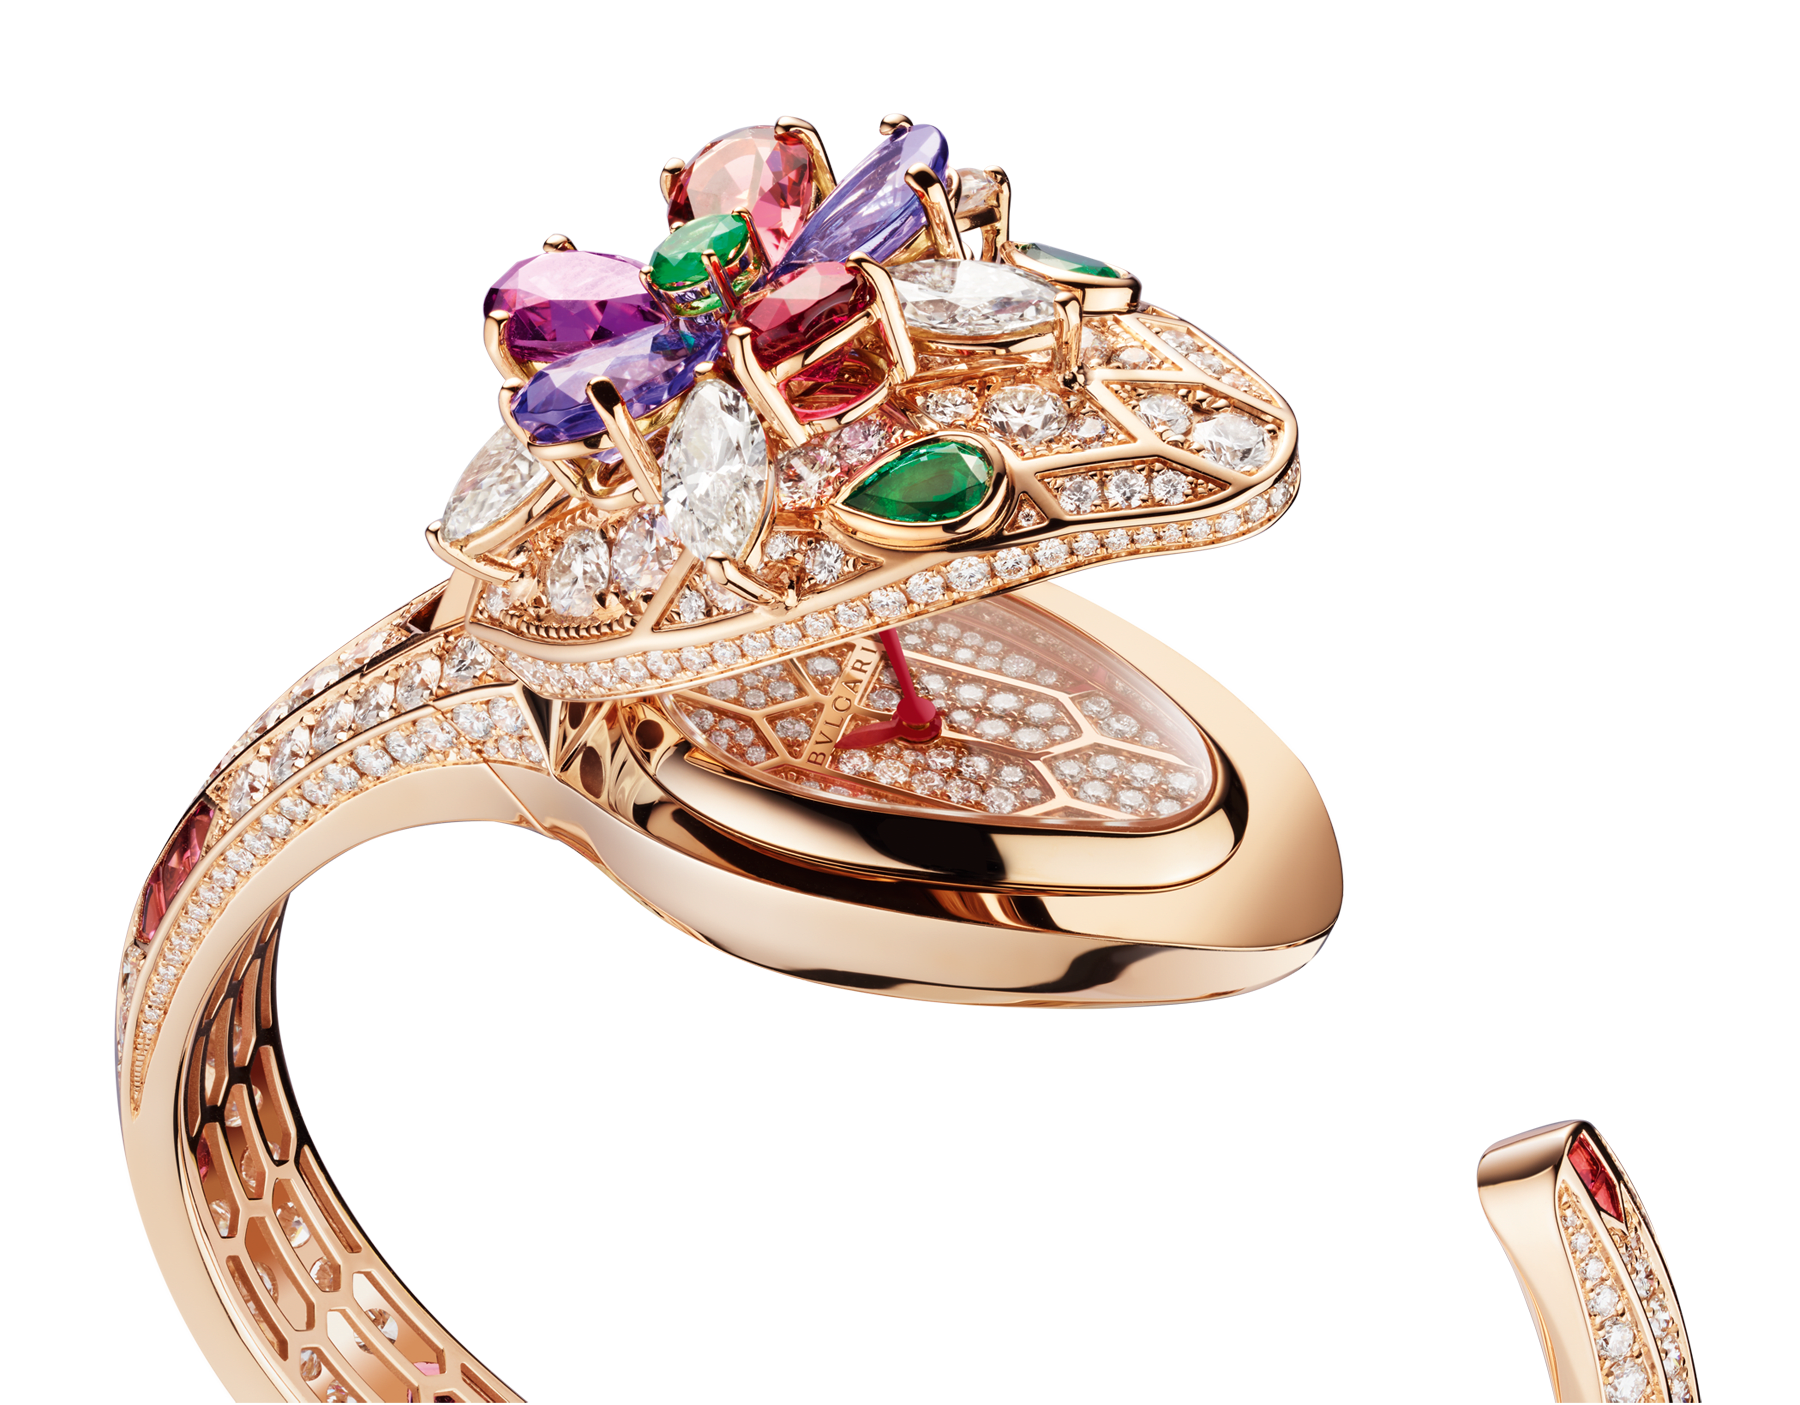 Serpenti Seduttori watch with 18 kt rose gold head set with brilliant cut and navette cut diamonds, pear shaped rubellite, tourmaline, tanzanite and violet garnets, one round cut emerald and two emerald eyes, 18 kt rose gold case, 18 kt rose gold dial set with brilliant cut diamonds, 18 kt rose gold bracelet set with brilliant cut diamonds and baguette tourmalines. 102823 image 2